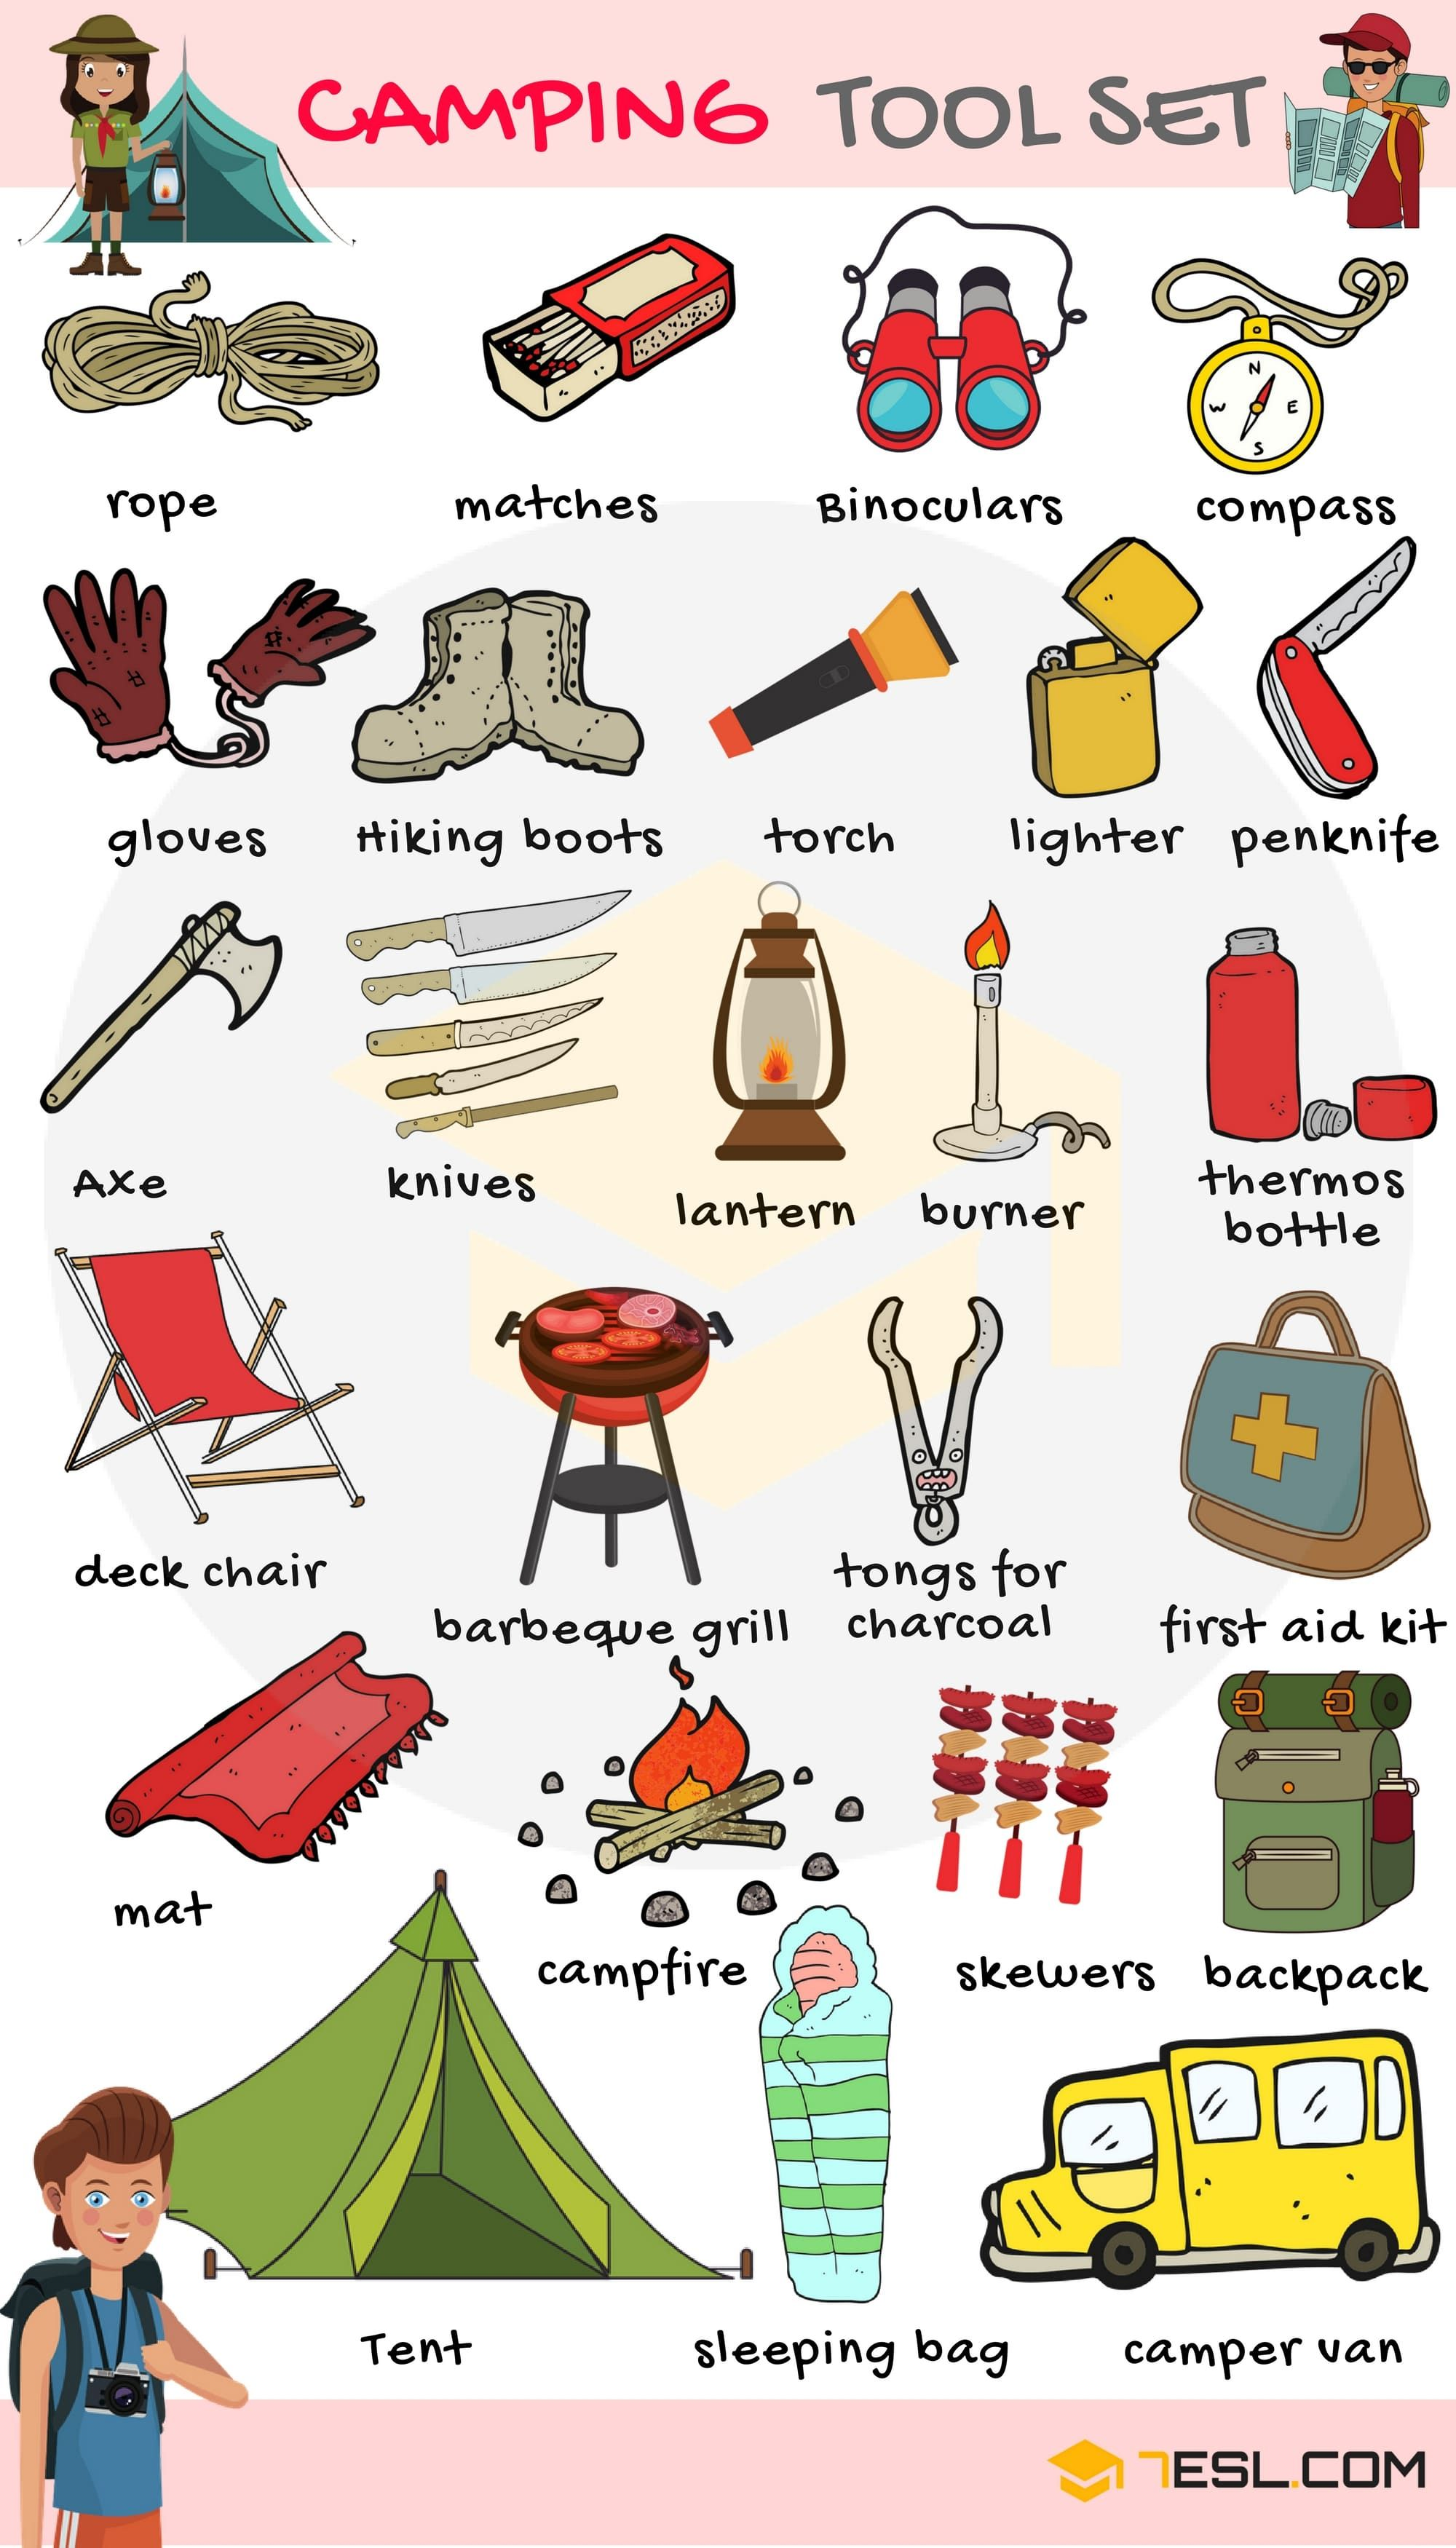 Camping Checklist: Useful Camping List with Pictures #campingpictures